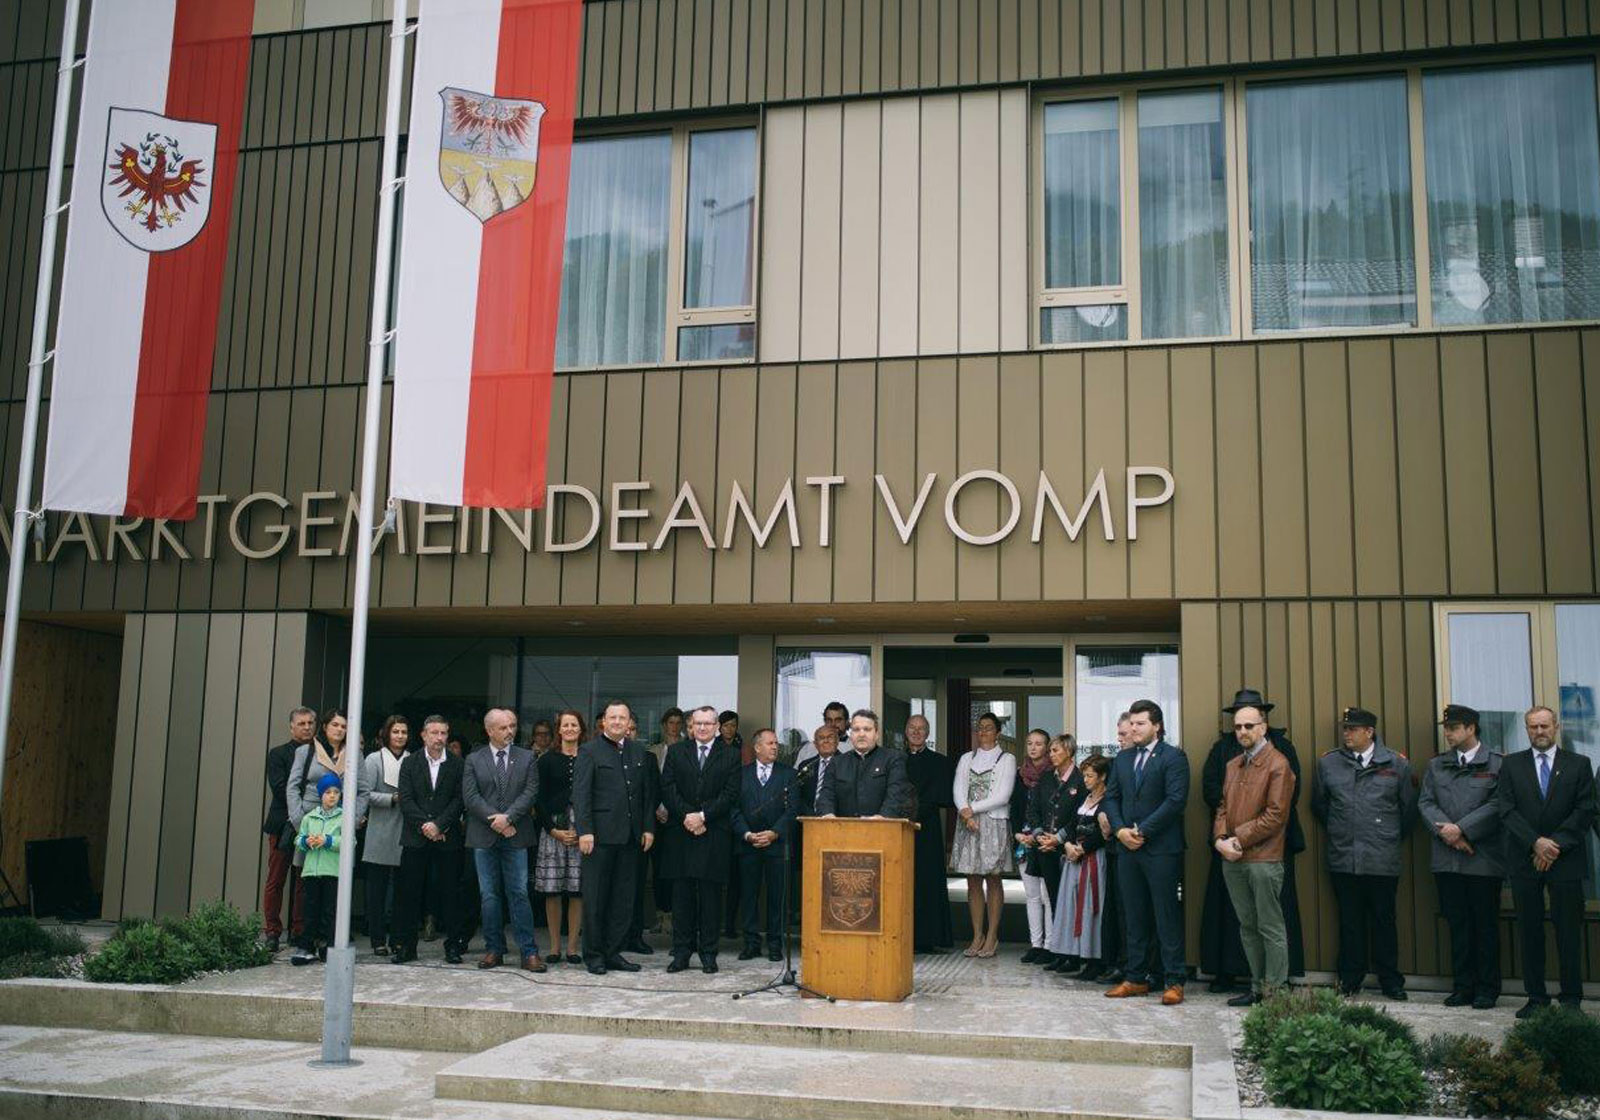 Ceremonial opening of the new municipal offices. Photo: Marktgemeinde Vomp